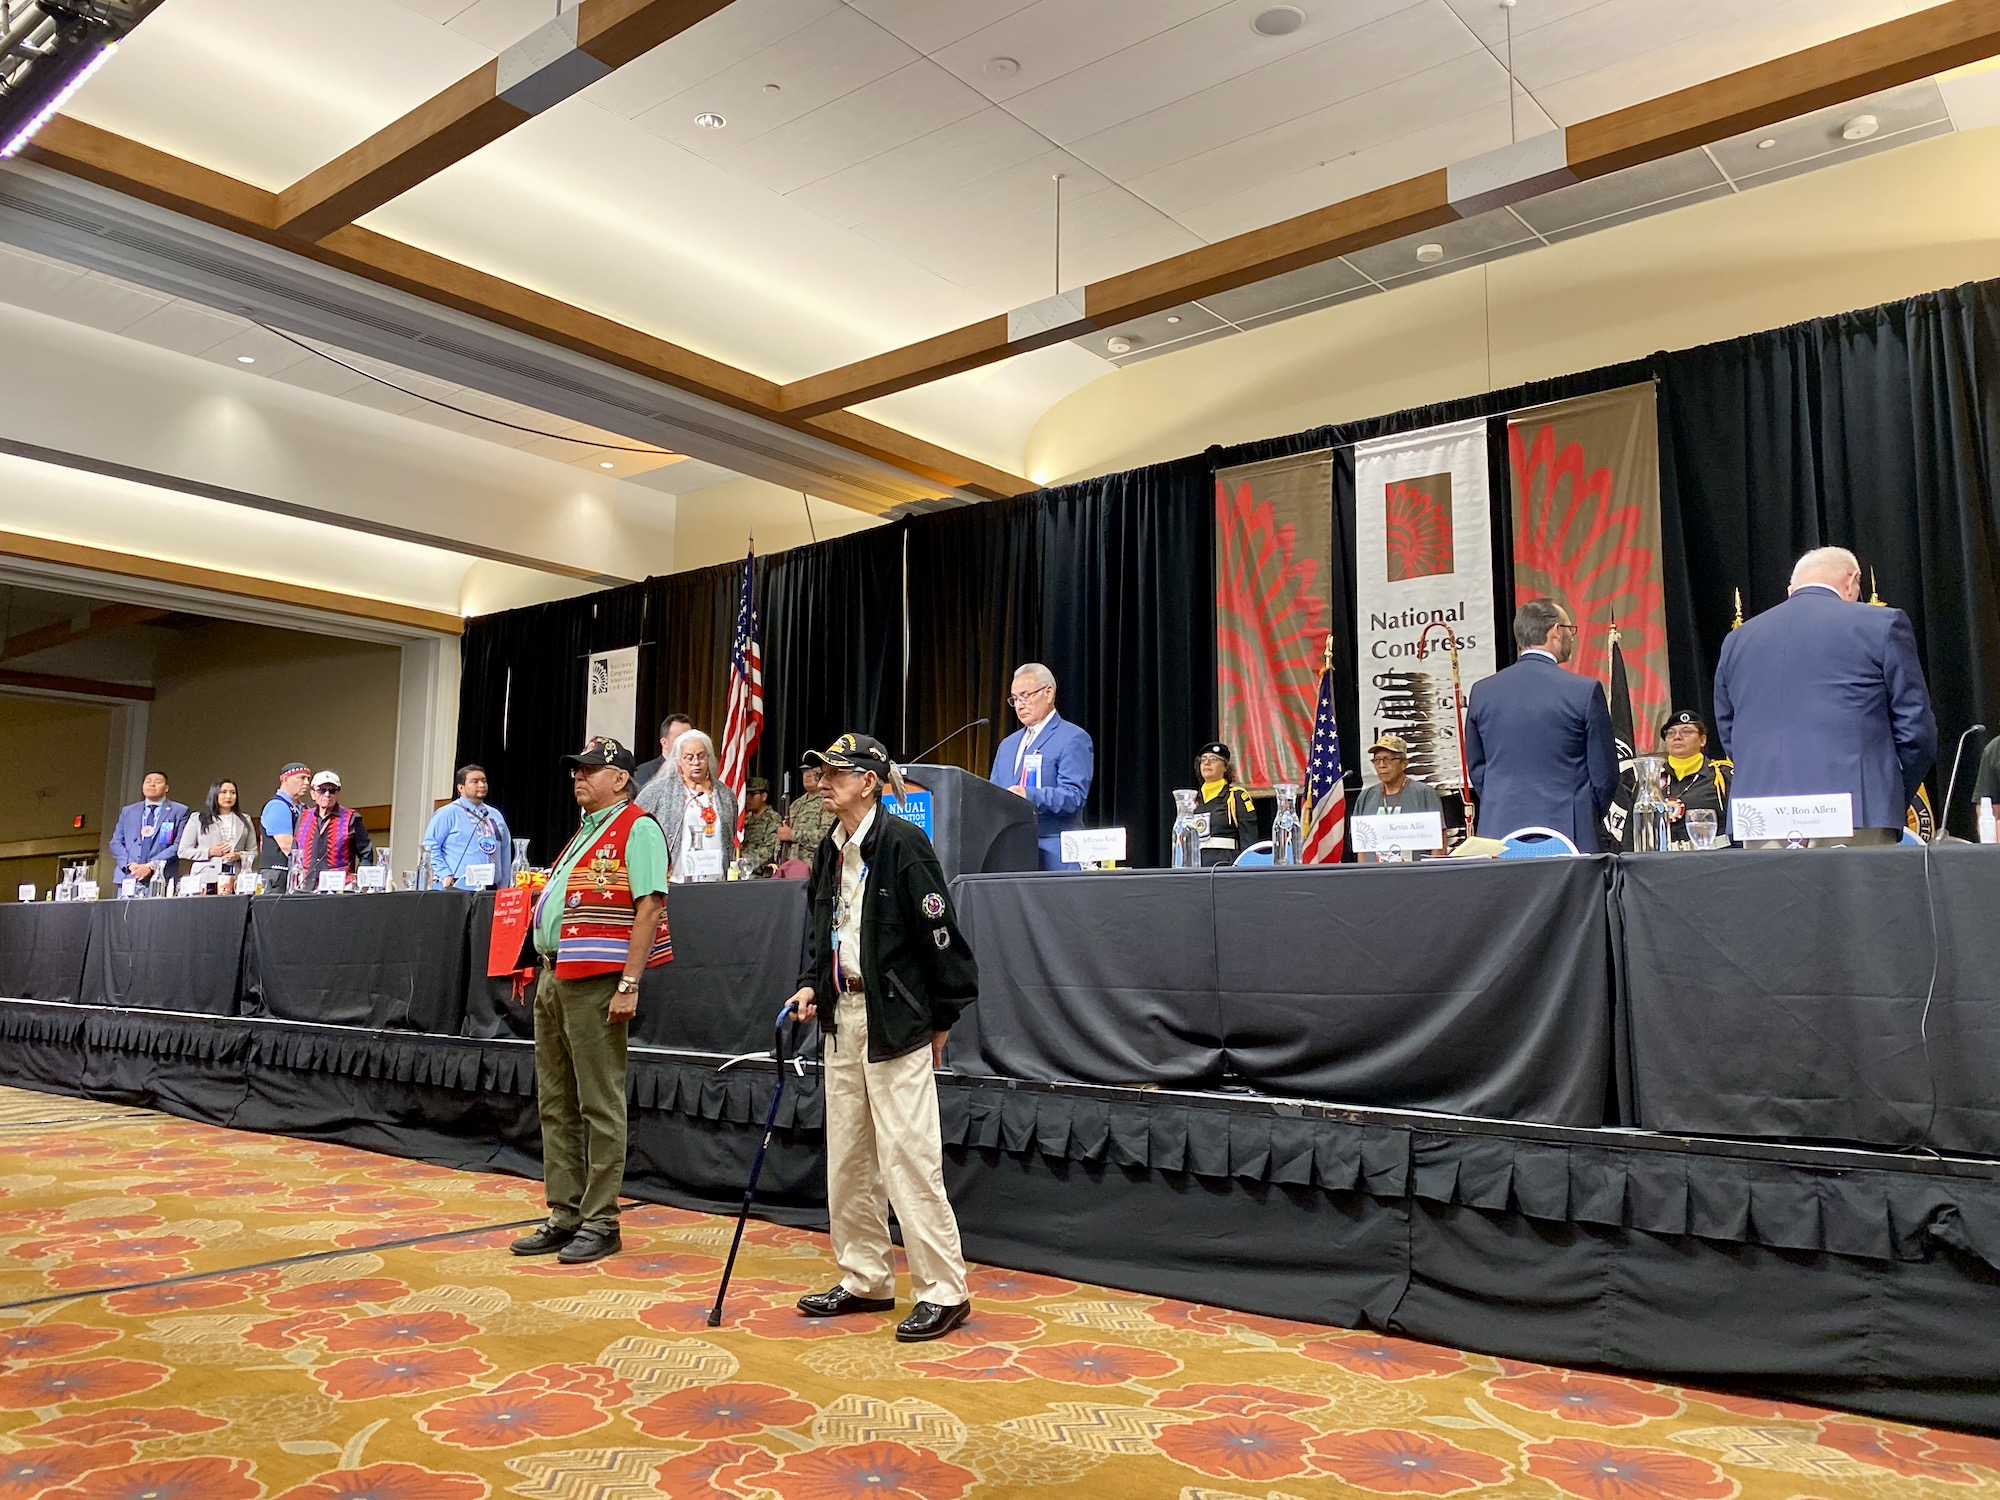 RECAP: National Congress of American Indians opens annual convention #NCAIAnnual19